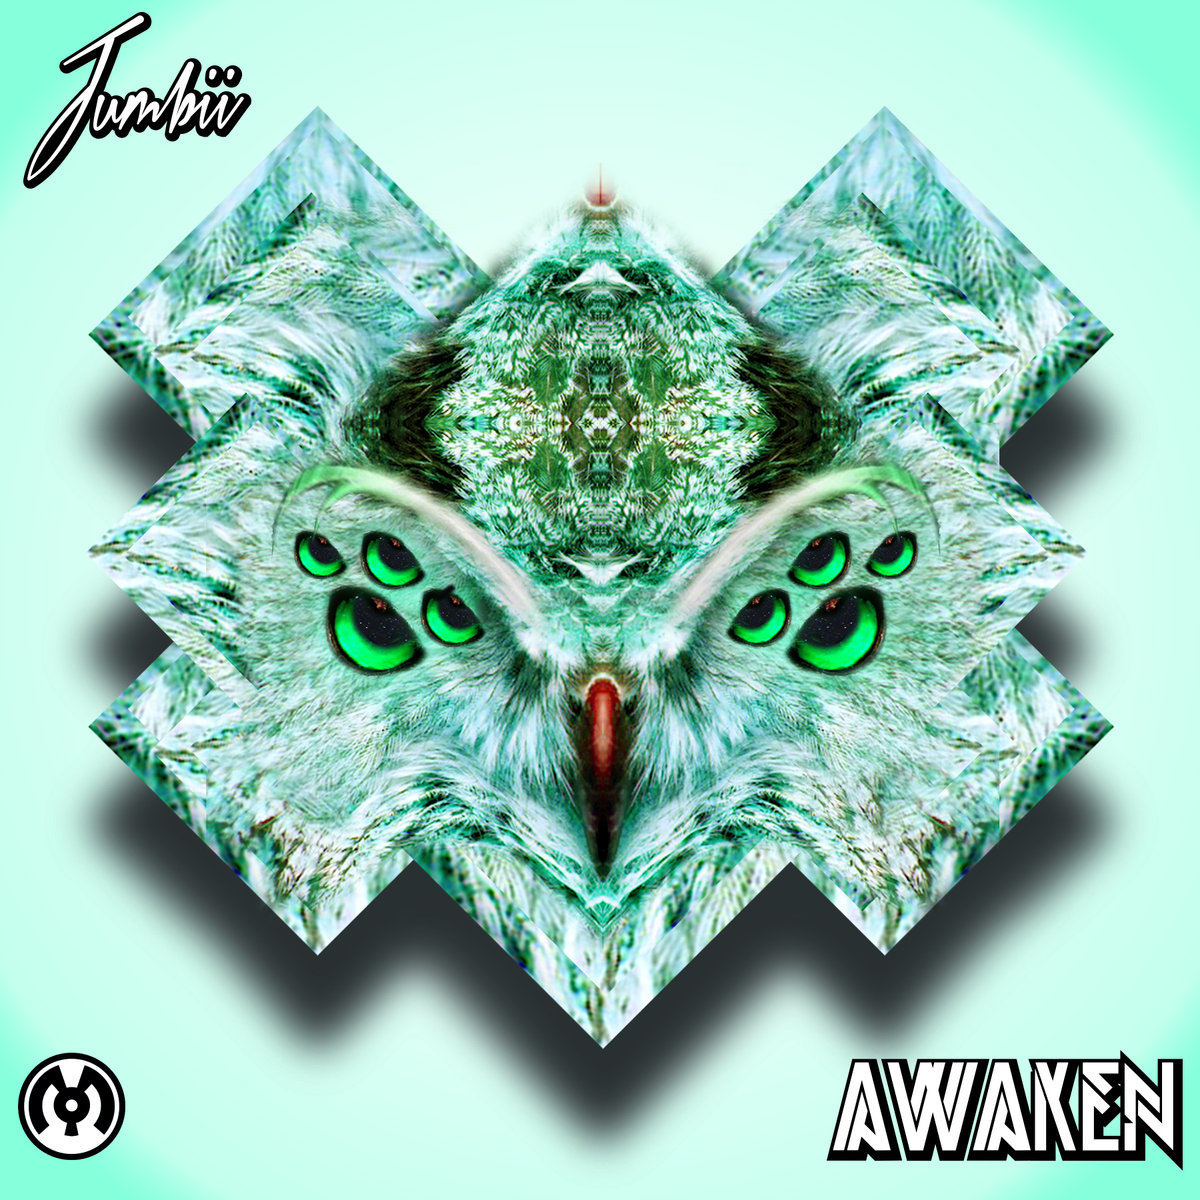 Jumbii - Nevis (wiZard Remix) @ 'Awaken' album (electronic, dubstep)